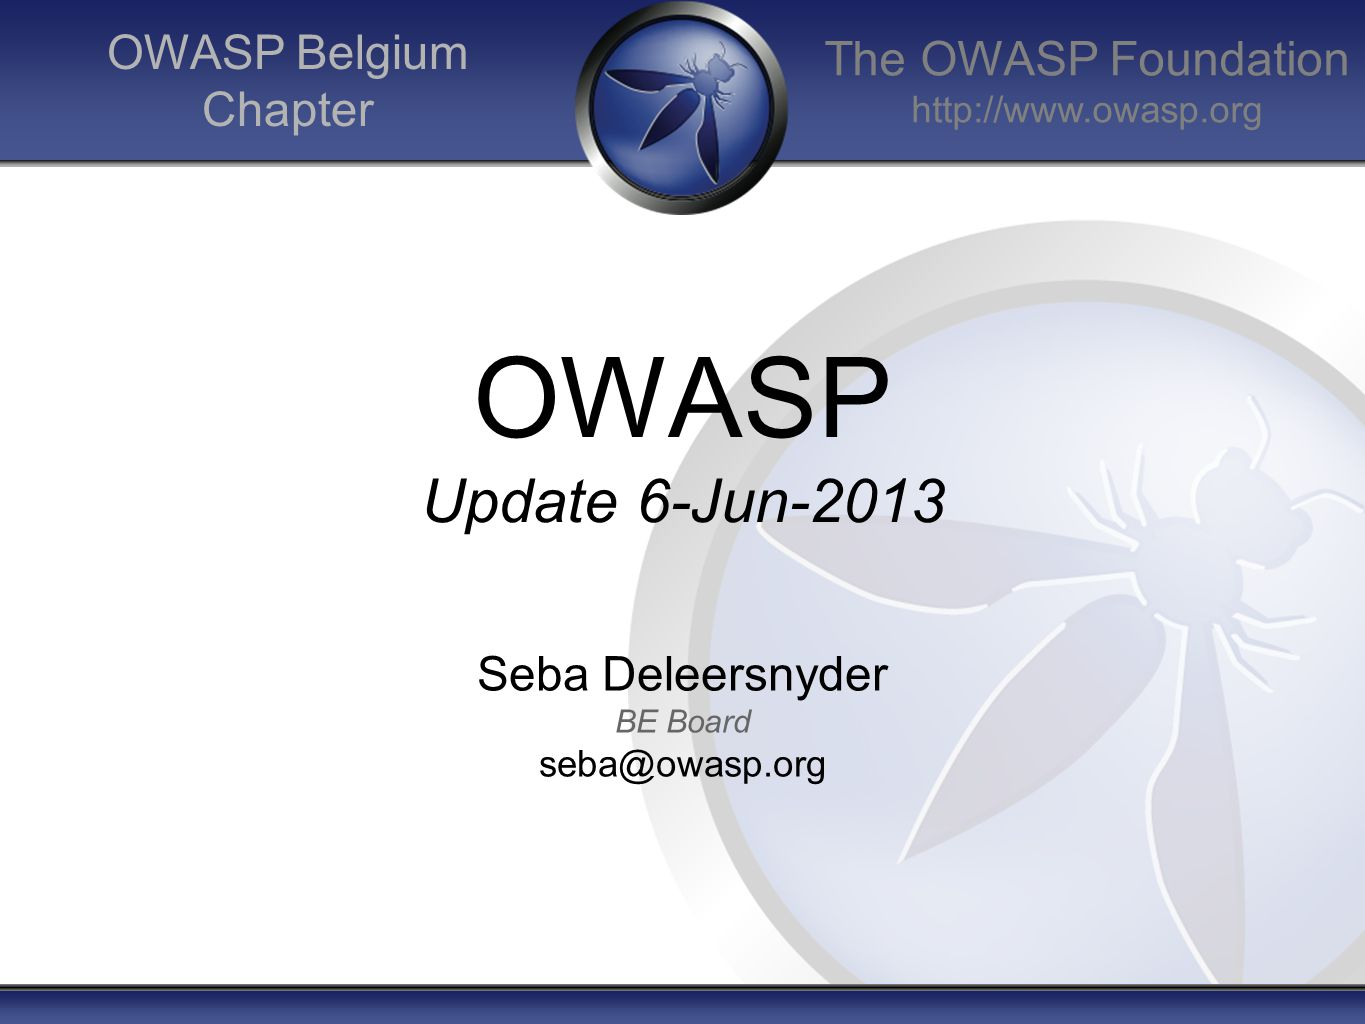 The OWASP Foundation   OWASP Belgium Chapter OWASP Update 6-Jun-2013 Seba Deleersnyder BE Board